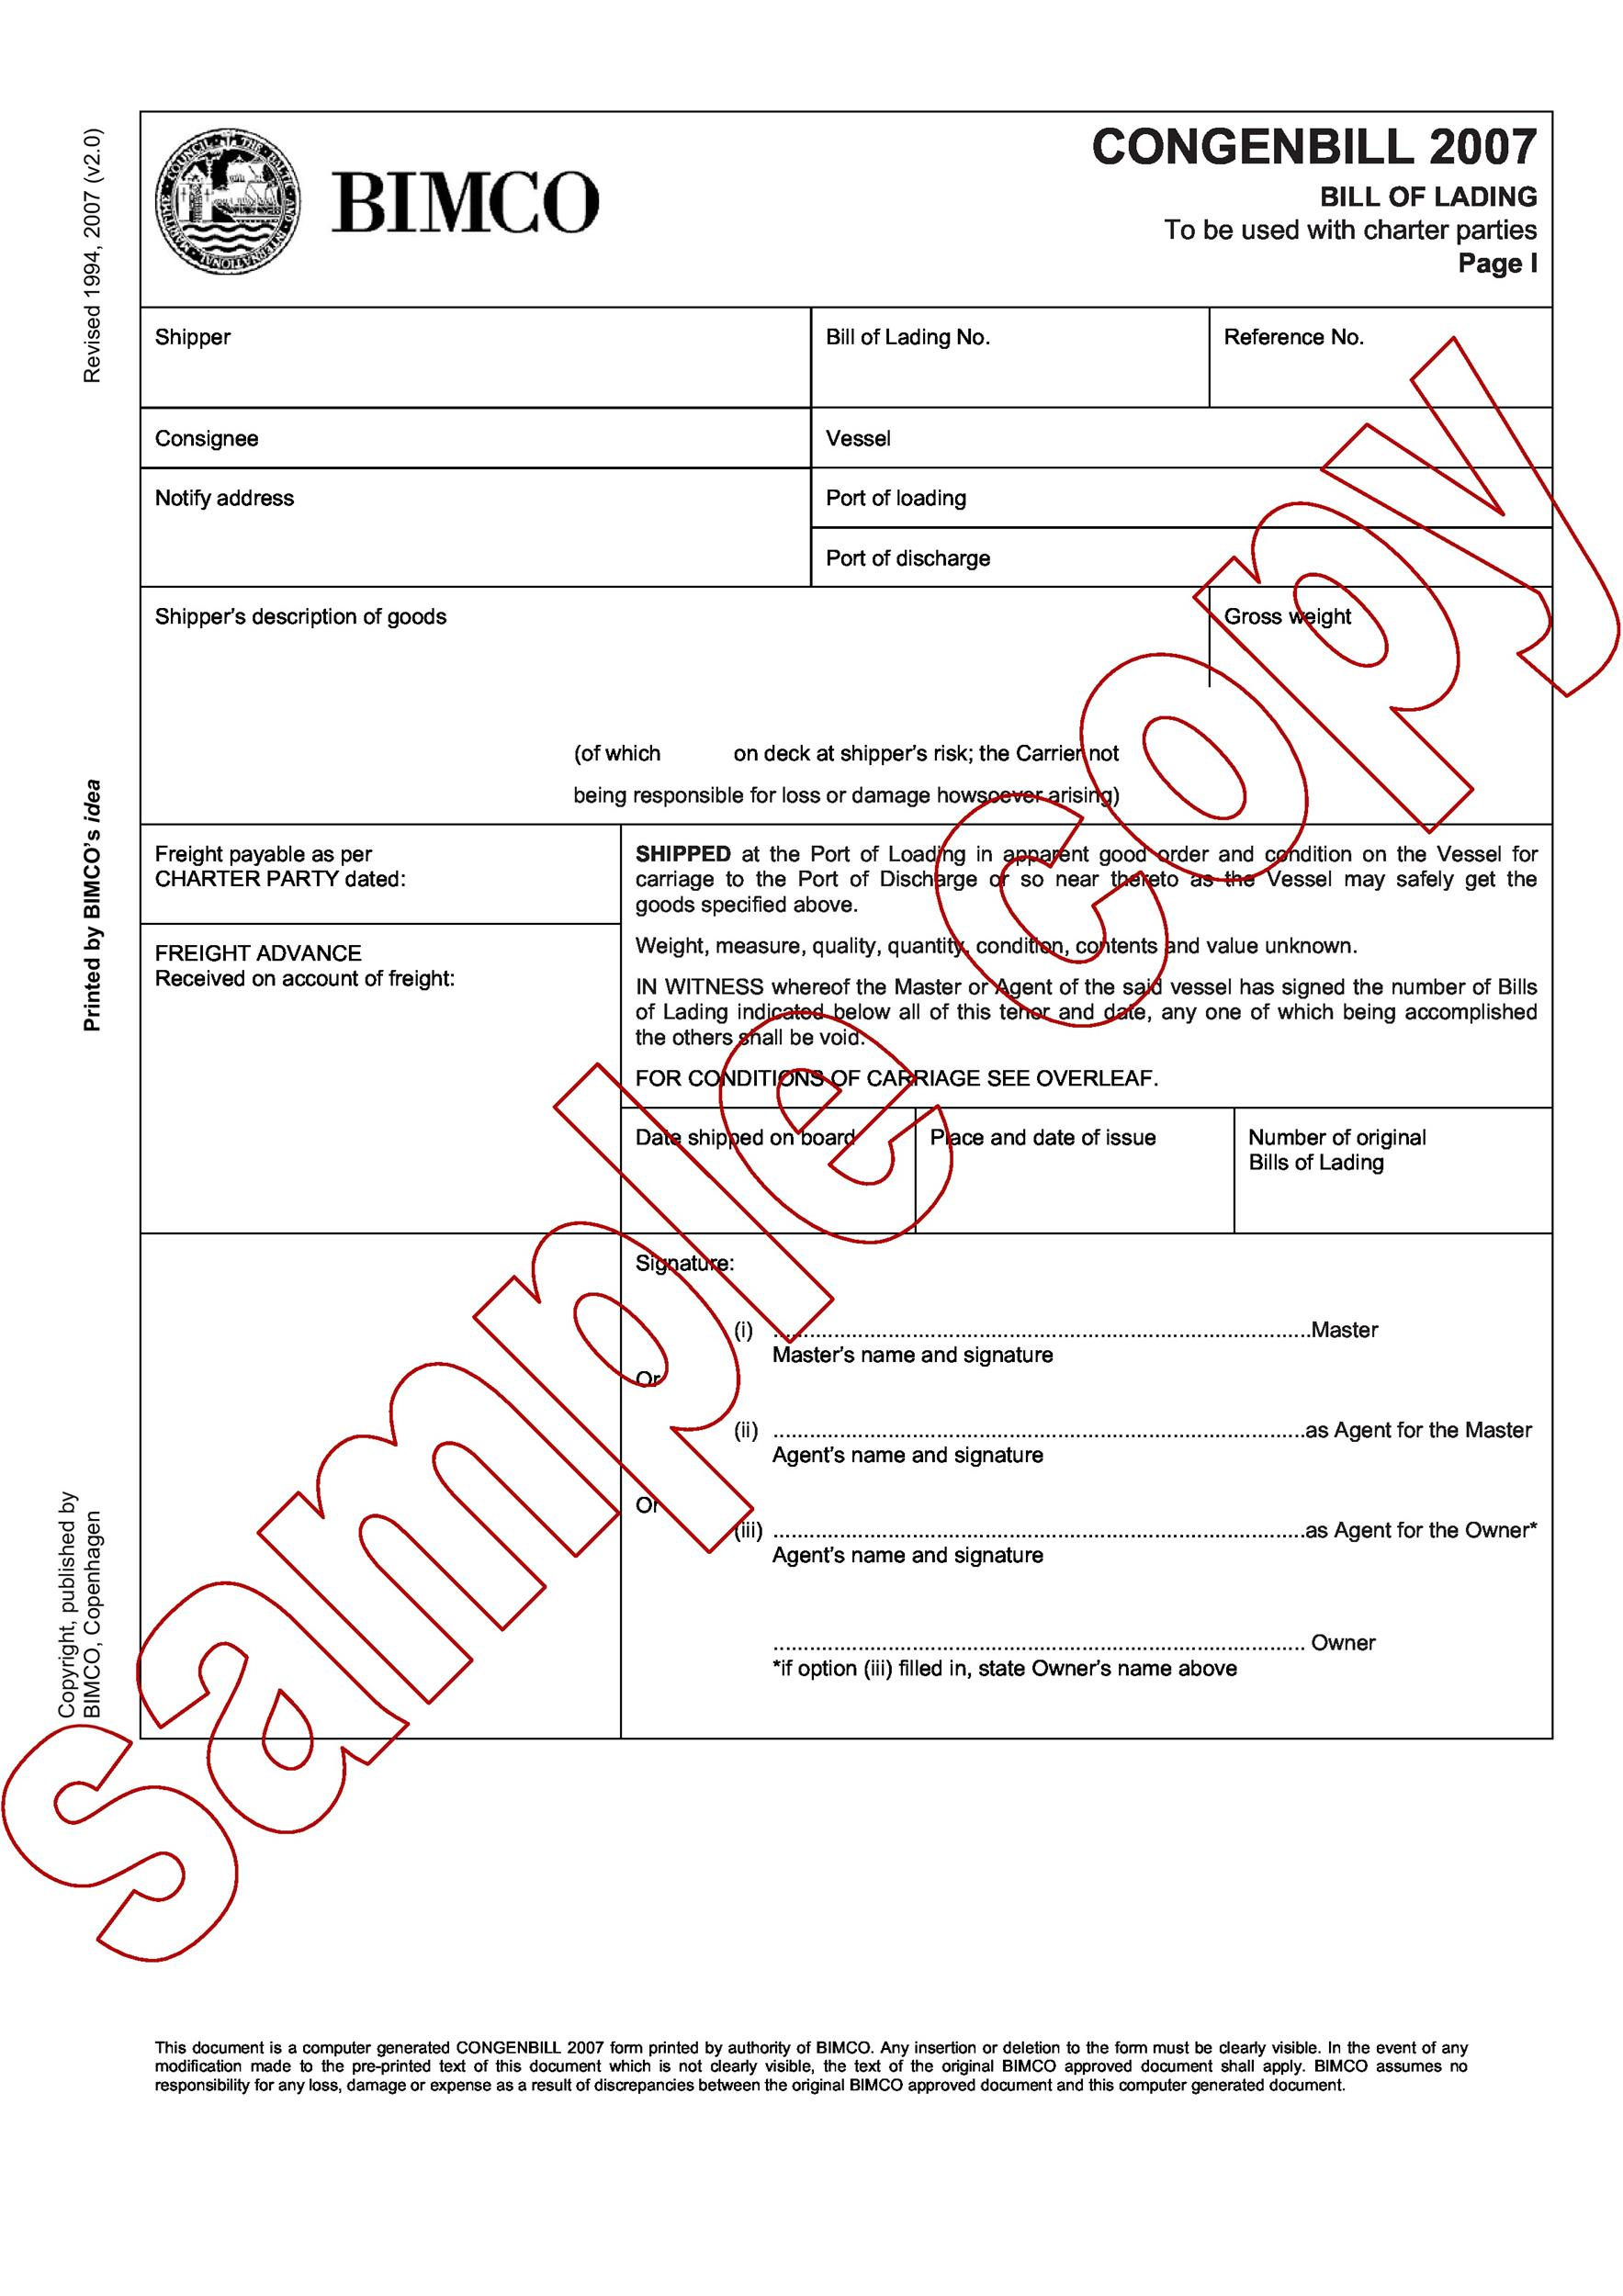 40 Free Bill of Lading Forms Templates Template Lab – Sample of Bill of Lading Document